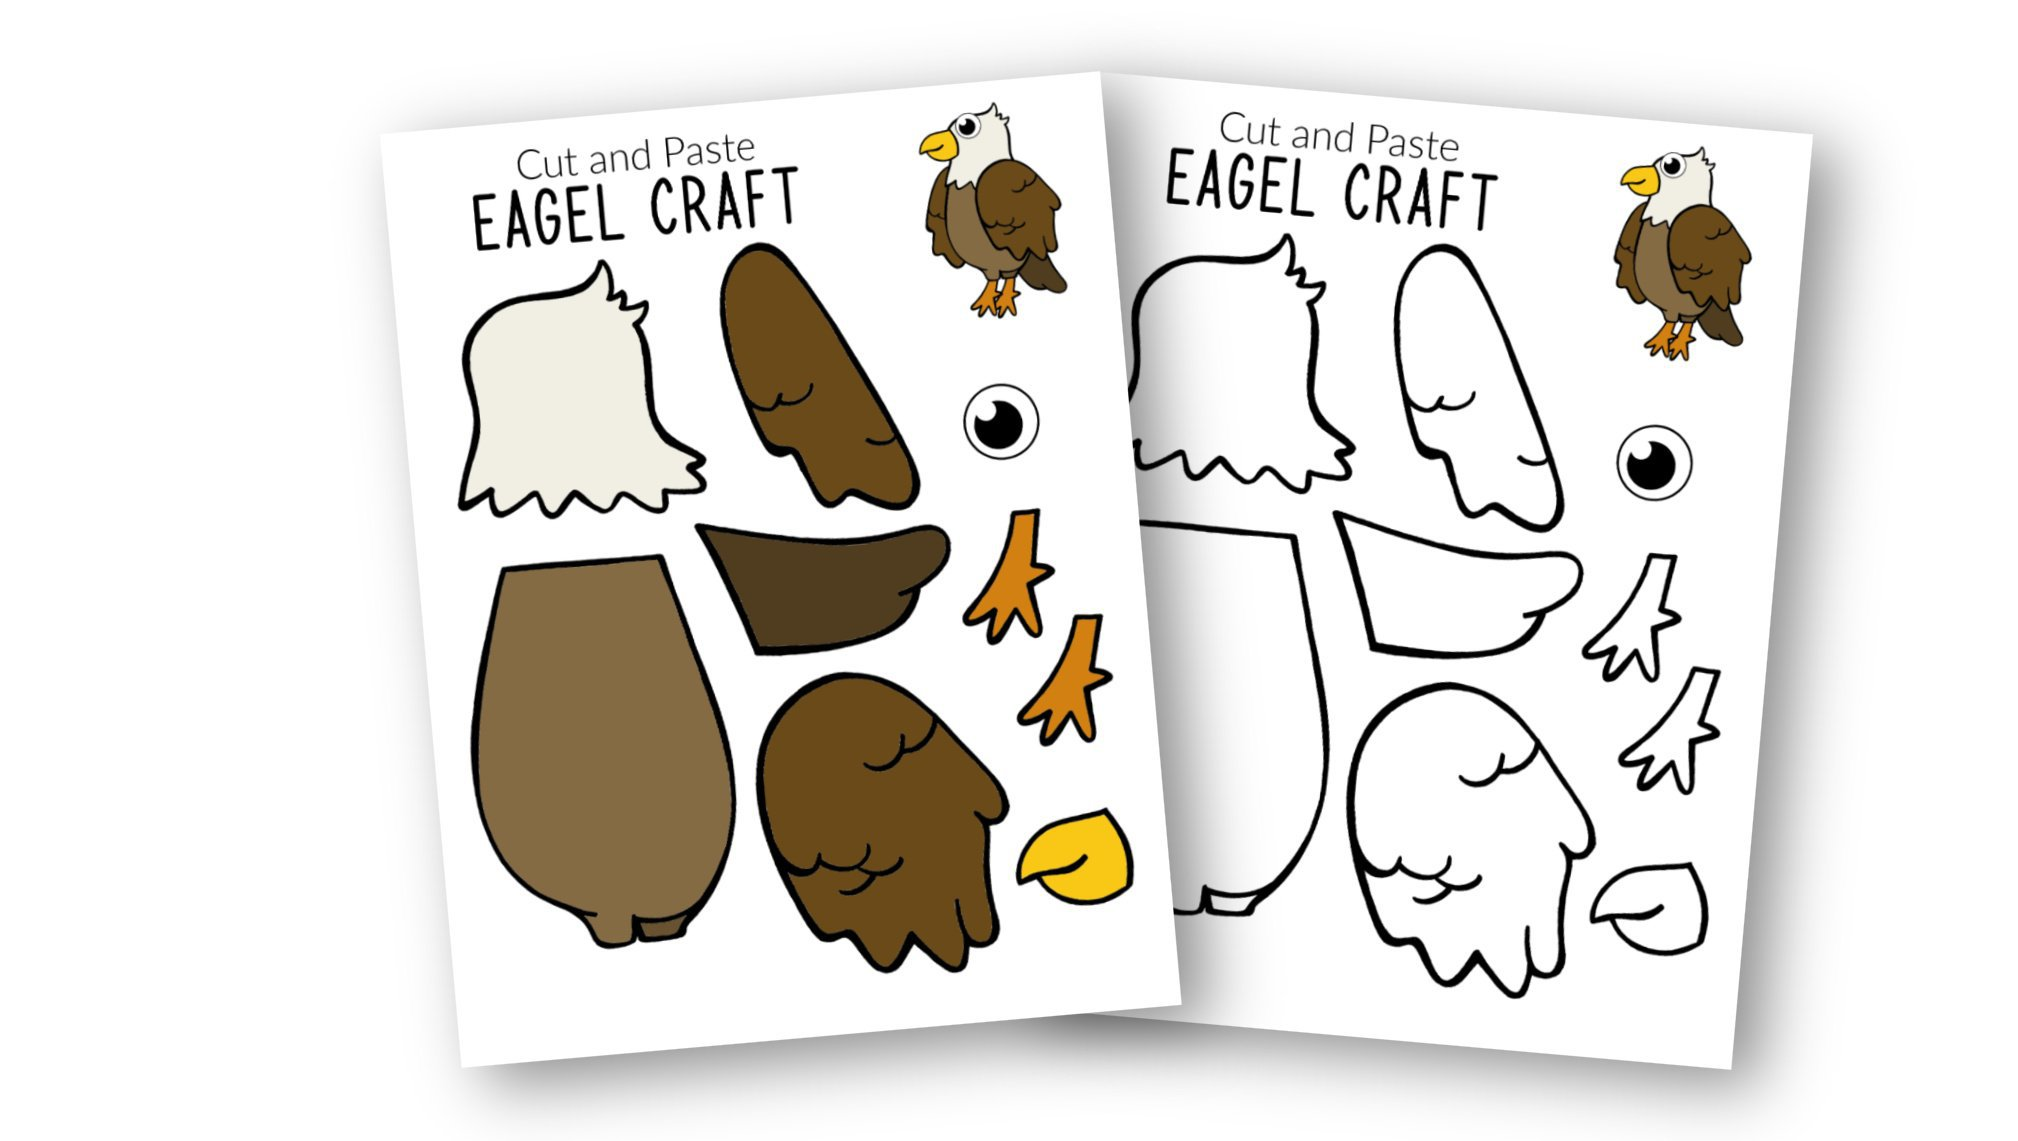 Free Printable Eagle Craft for Kids, preschoolers toddlers and kindergartners